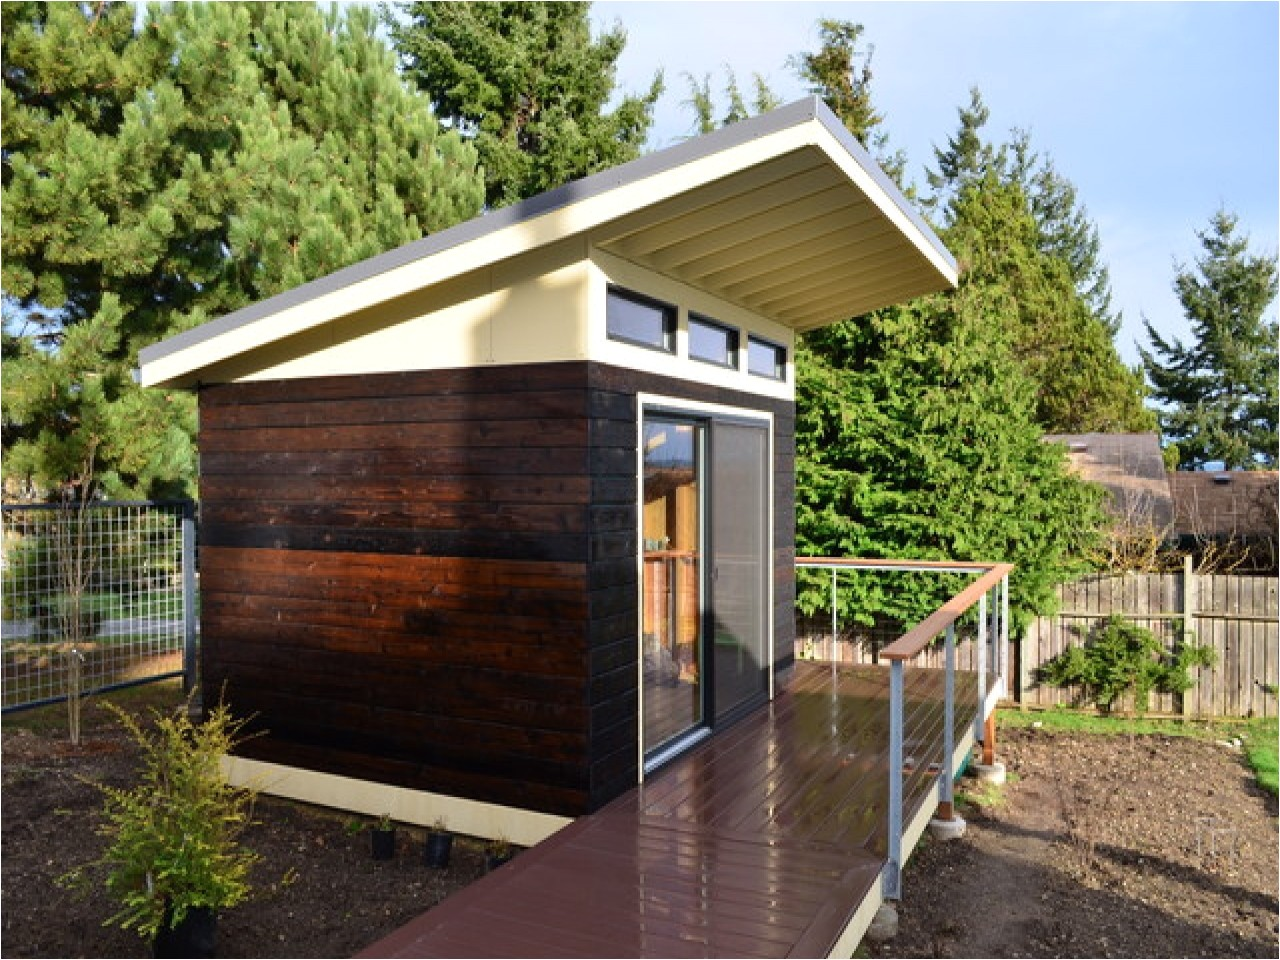 Shed home plans contemporary shed roof house plans modern shed roof design